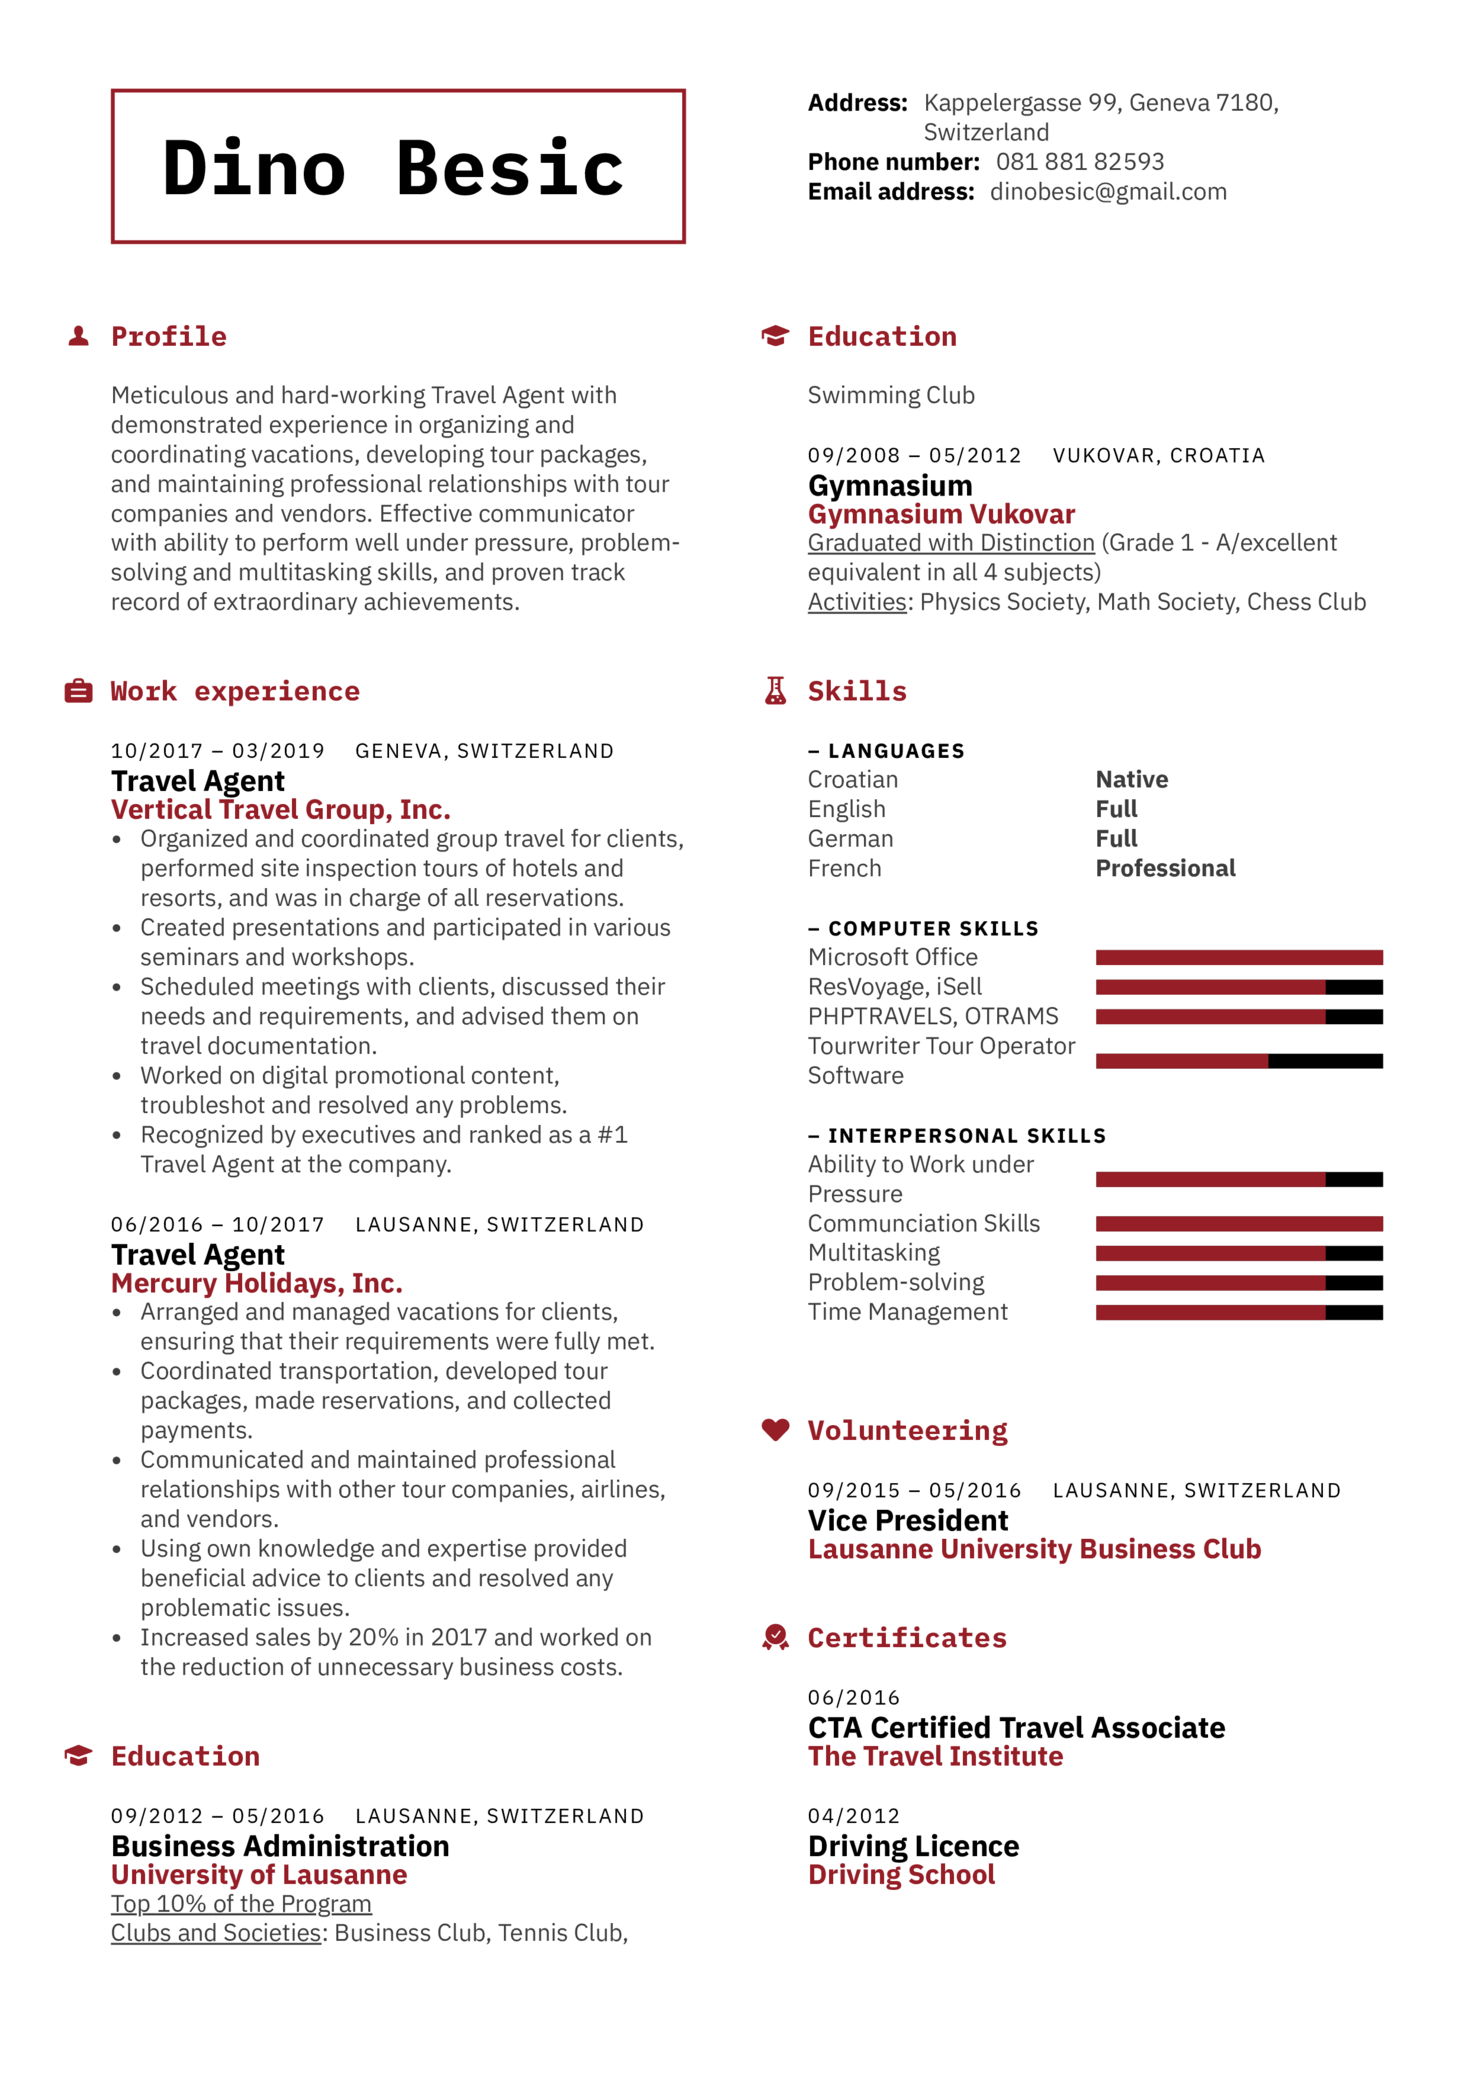 Travel Agent Resume Template (Teil 1)